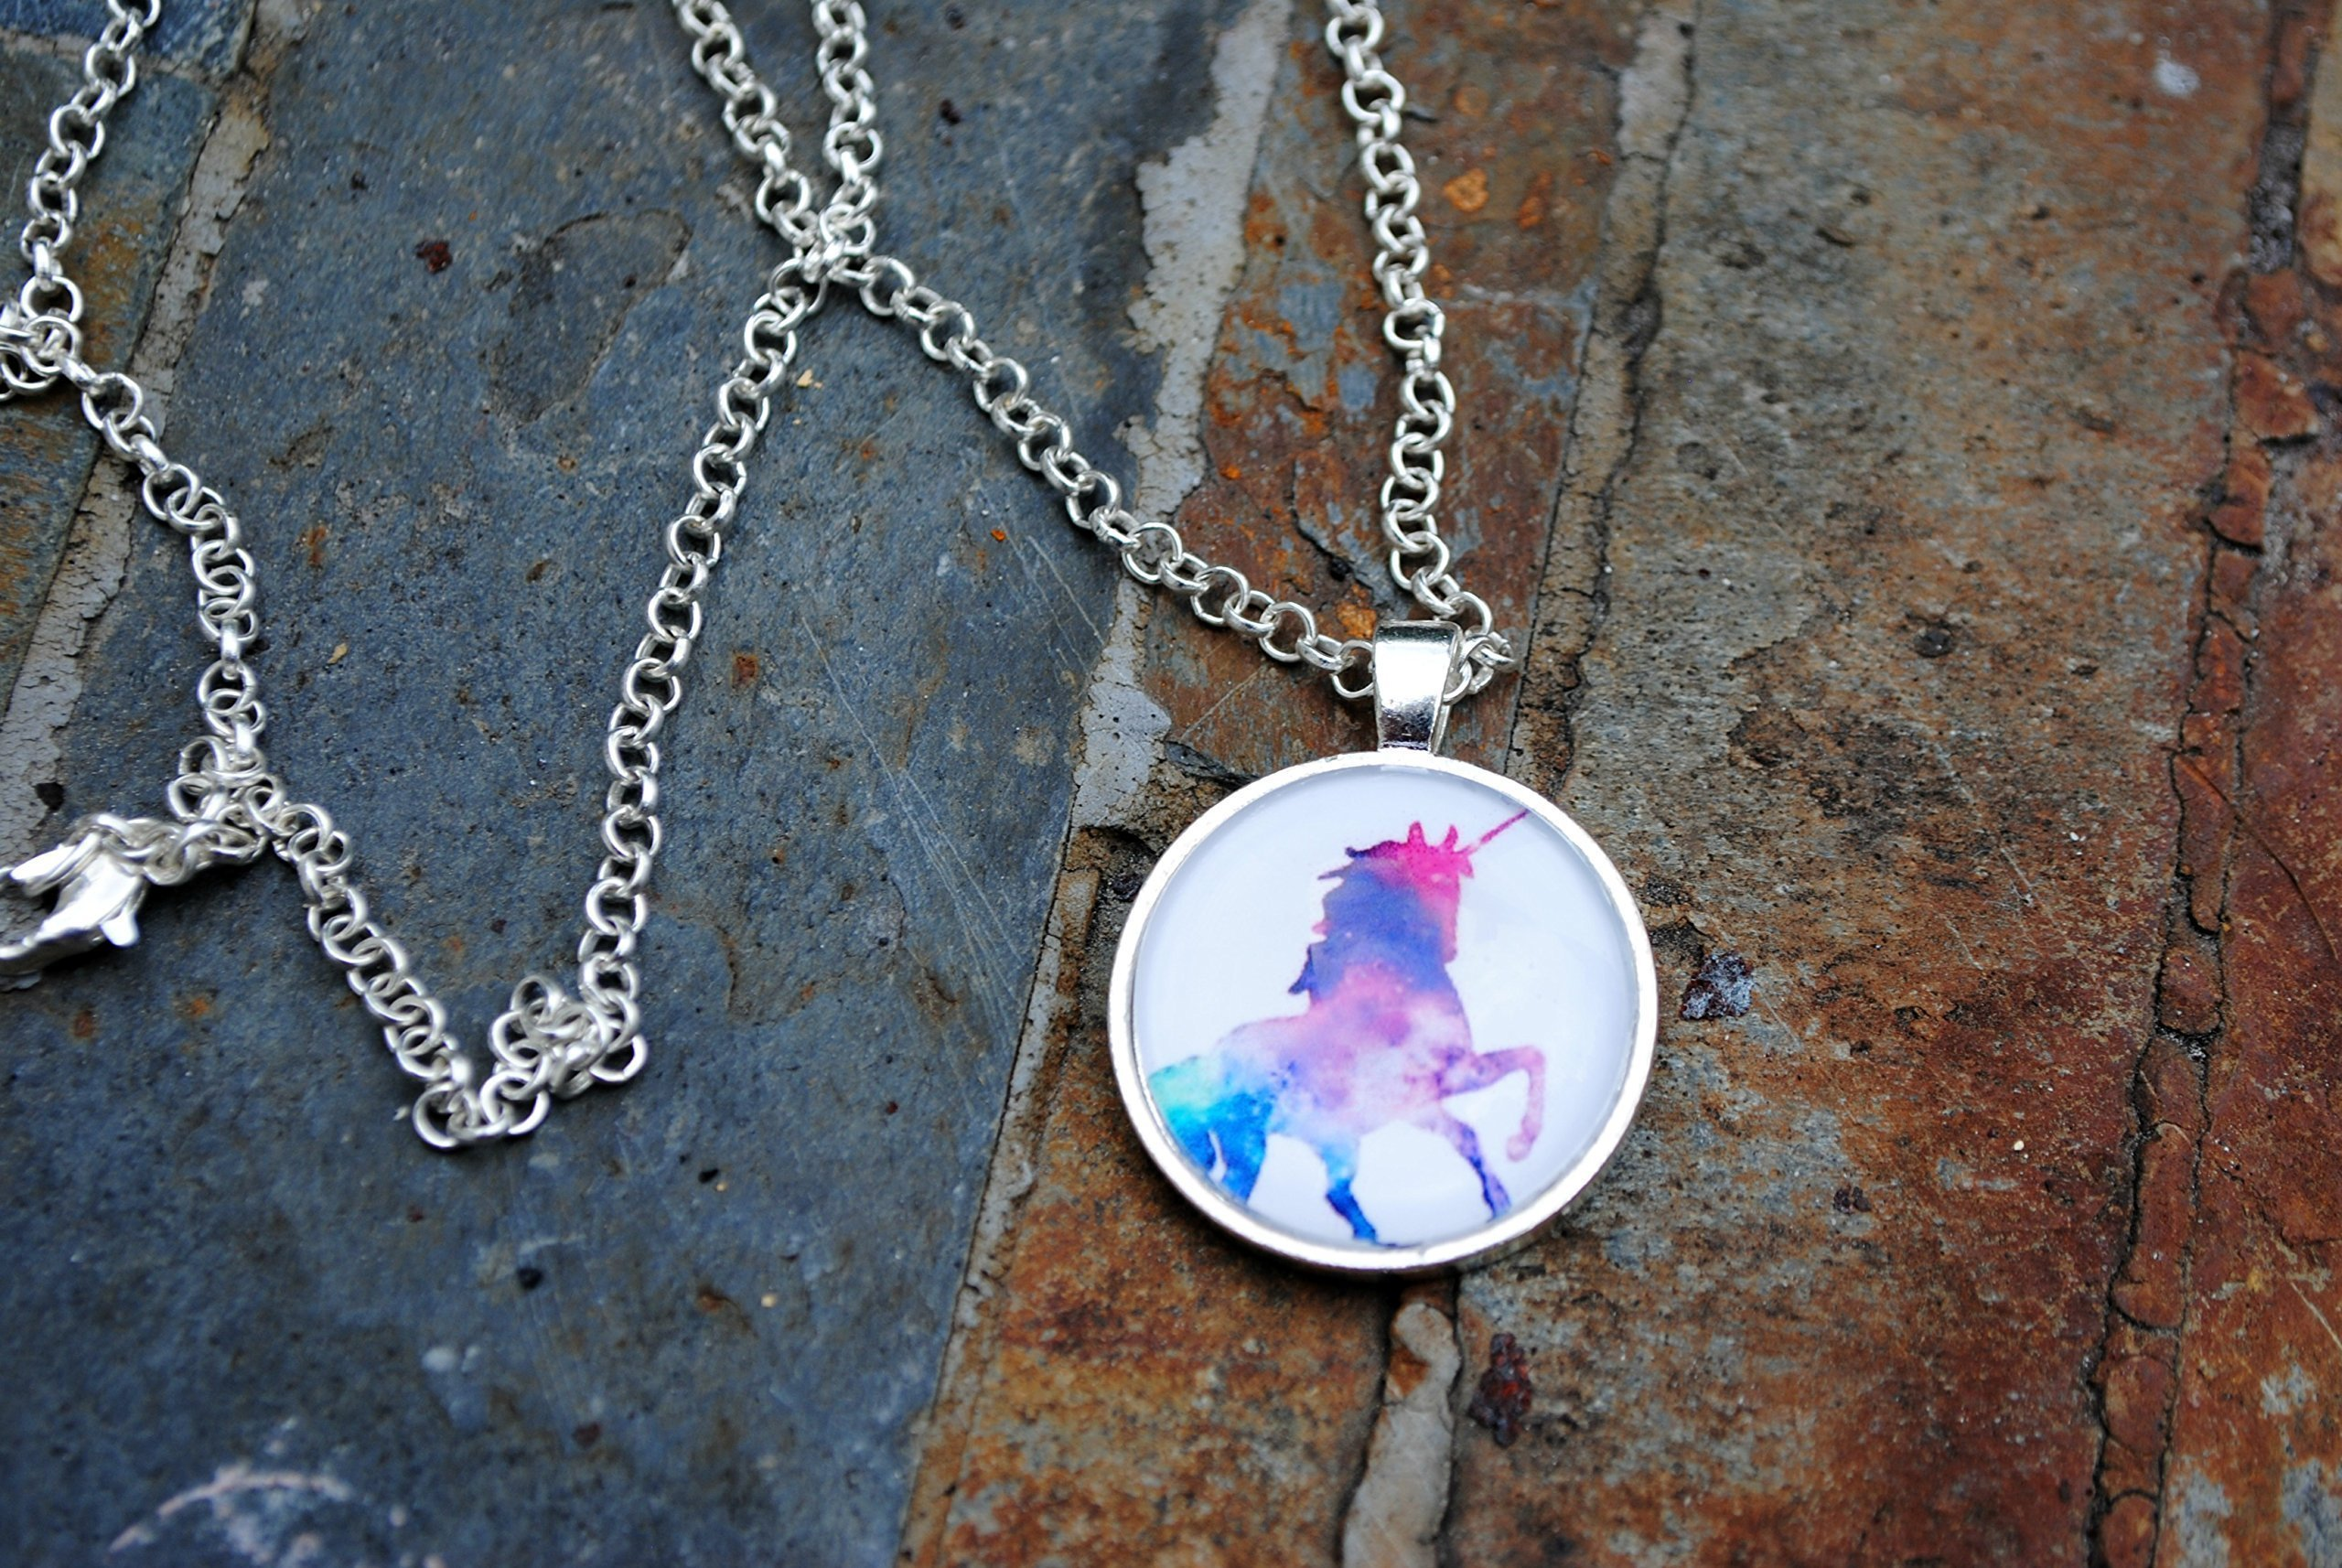 Magical Rainbow Unicorn Glass Dome Circle Pendant Necklace 24 Inch Chain Jewelry 3